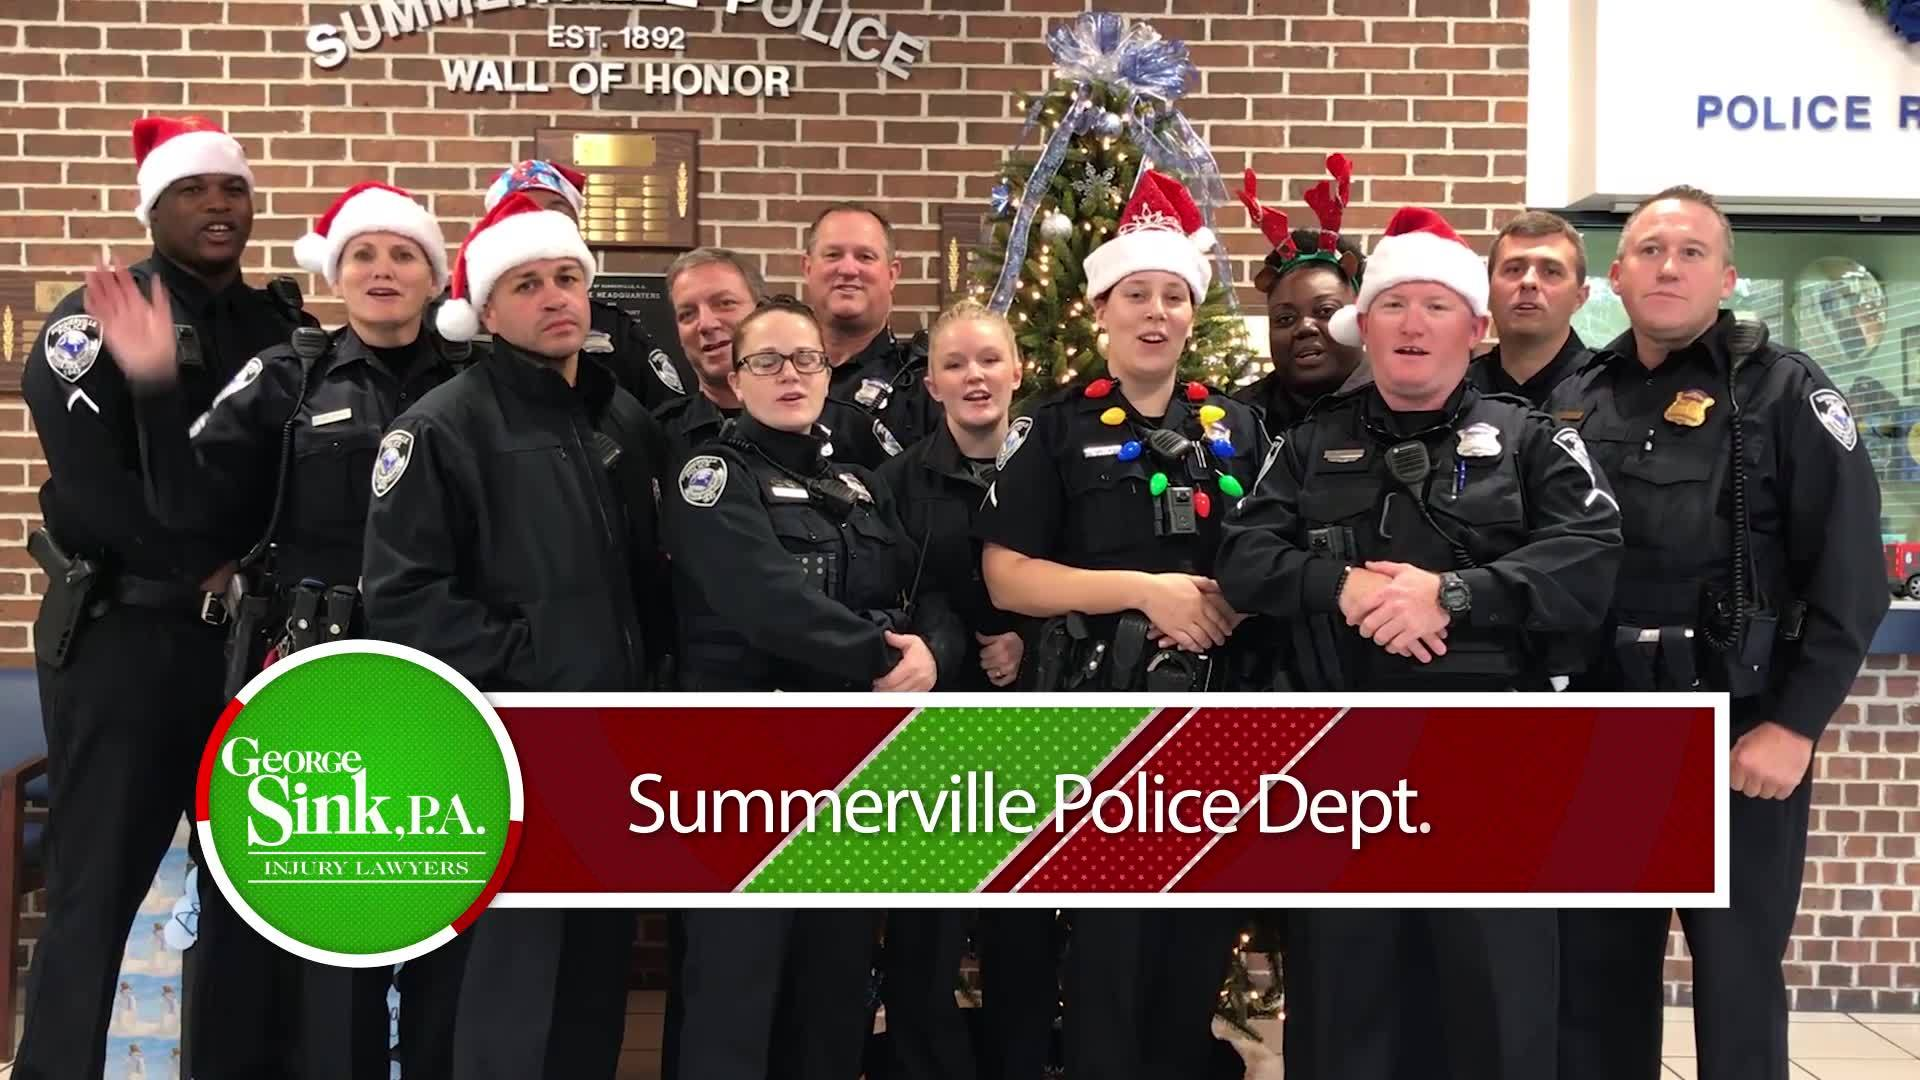 Holiday Heroes: Summerville Police Department 3